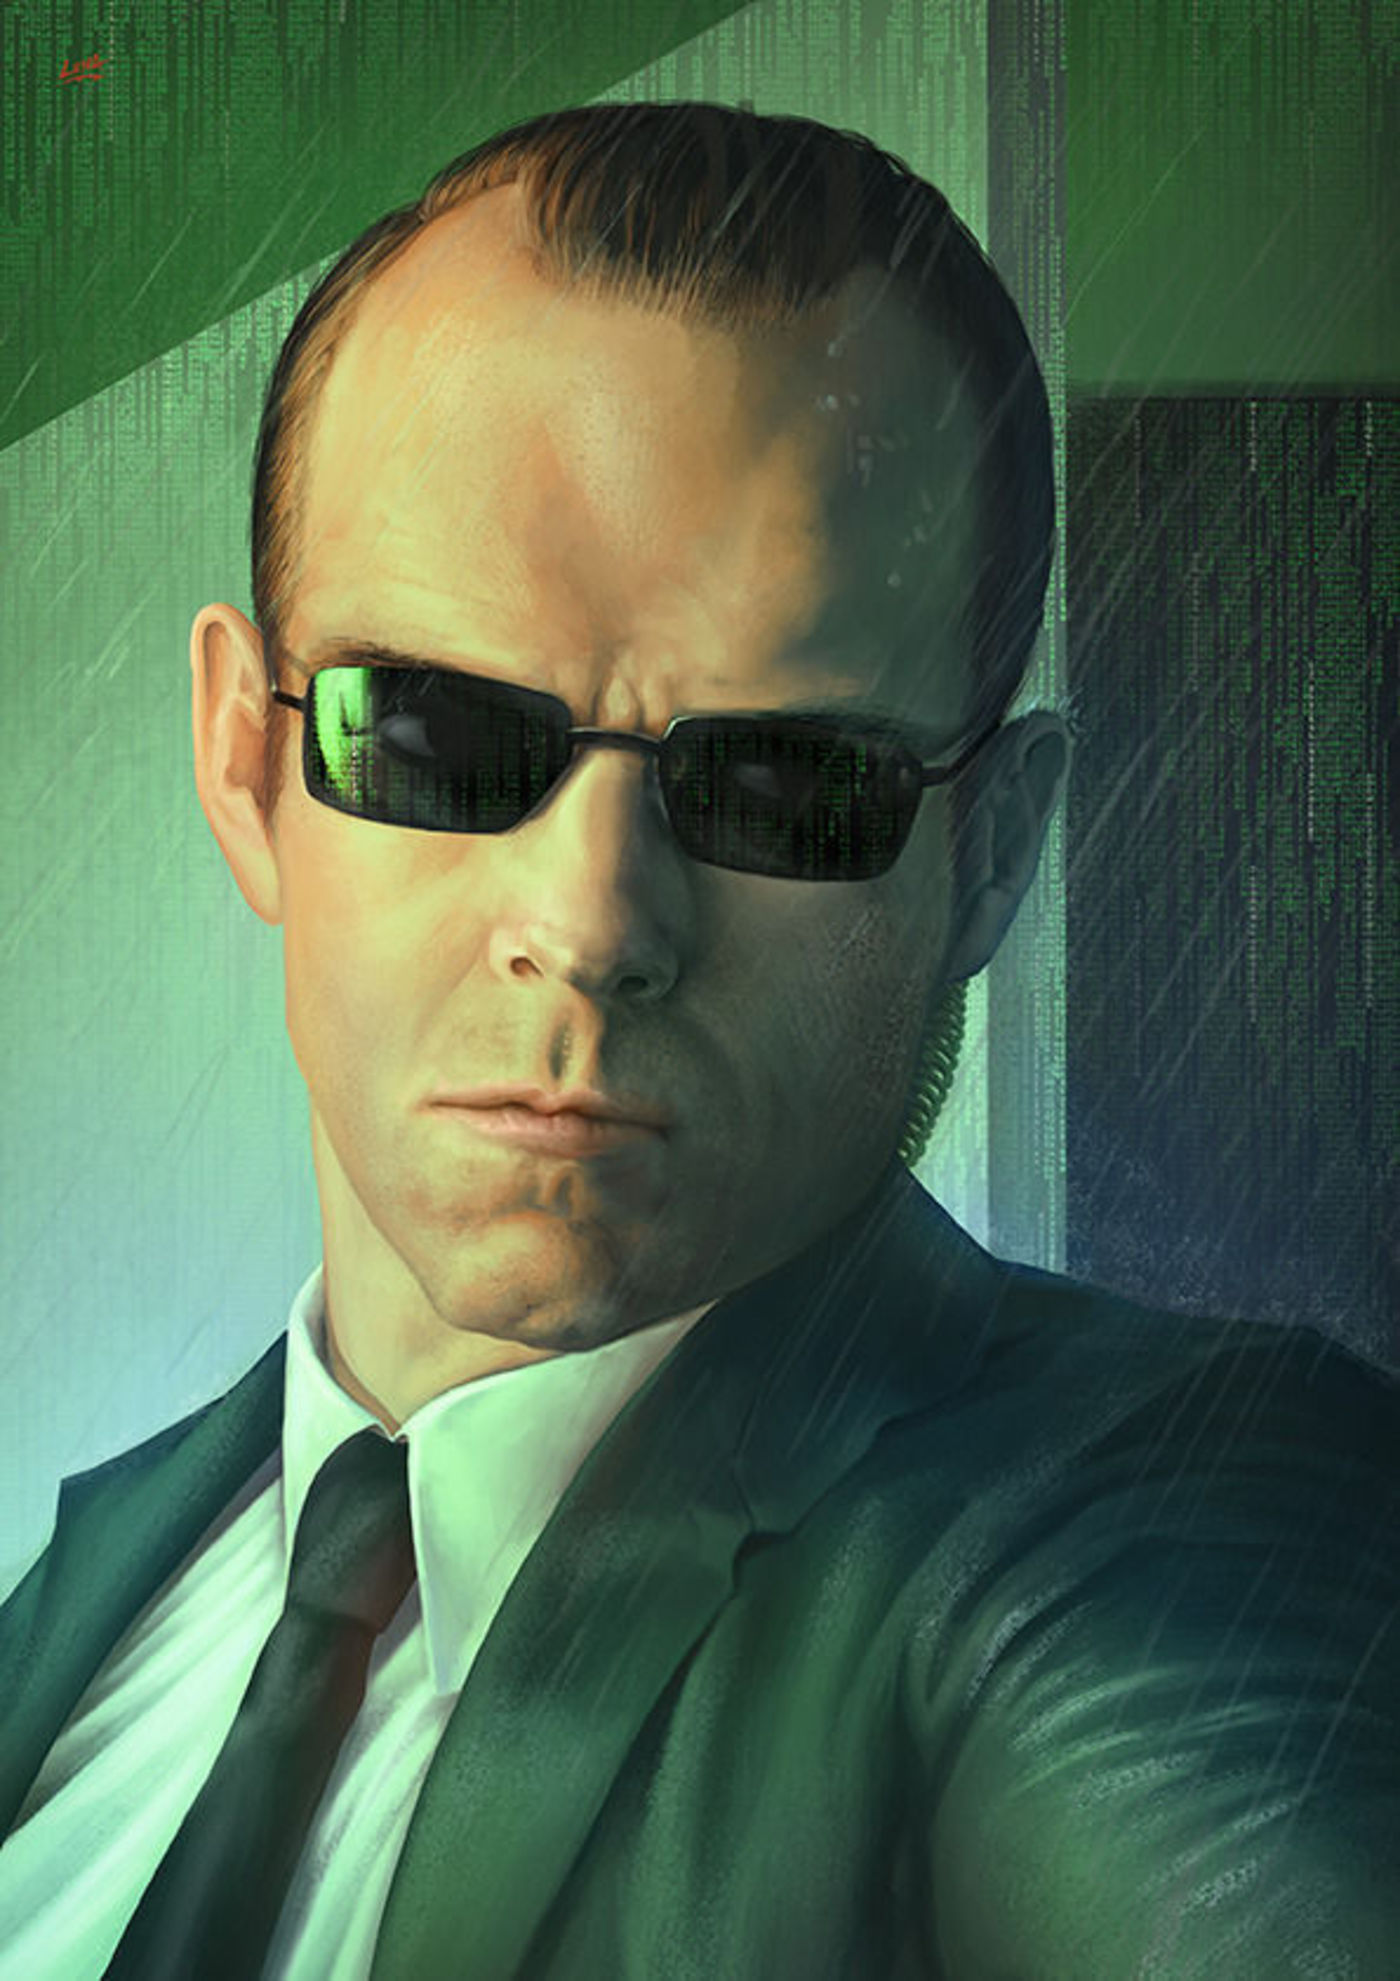 ee41903ca877 Agent Smith - Matrix | CGTrader